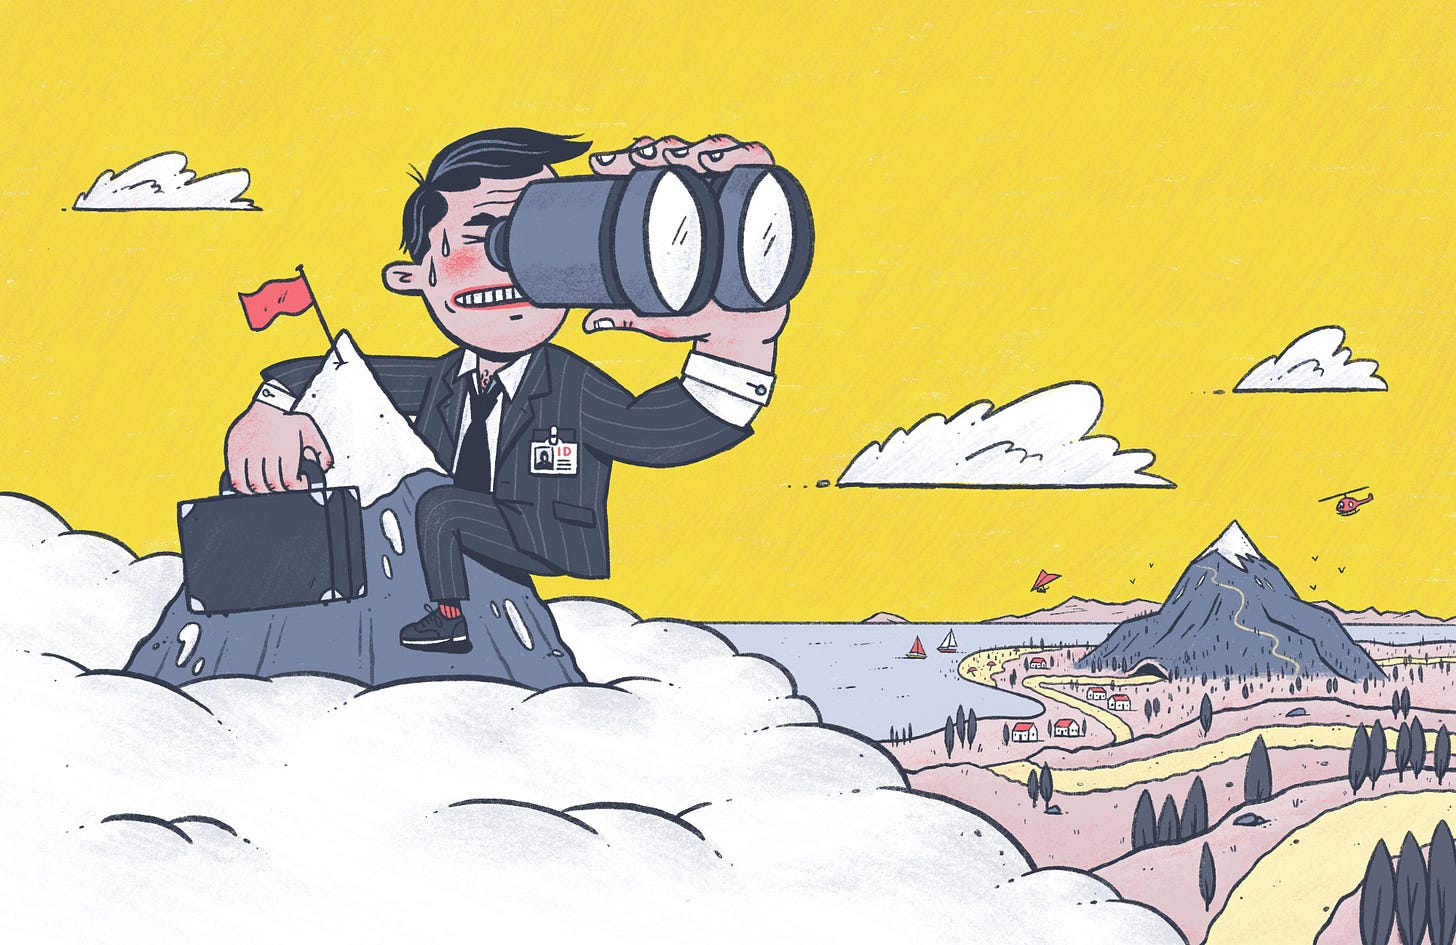 A man in a suit is on top of a mountain, looking through binoculars at another mountain far away.